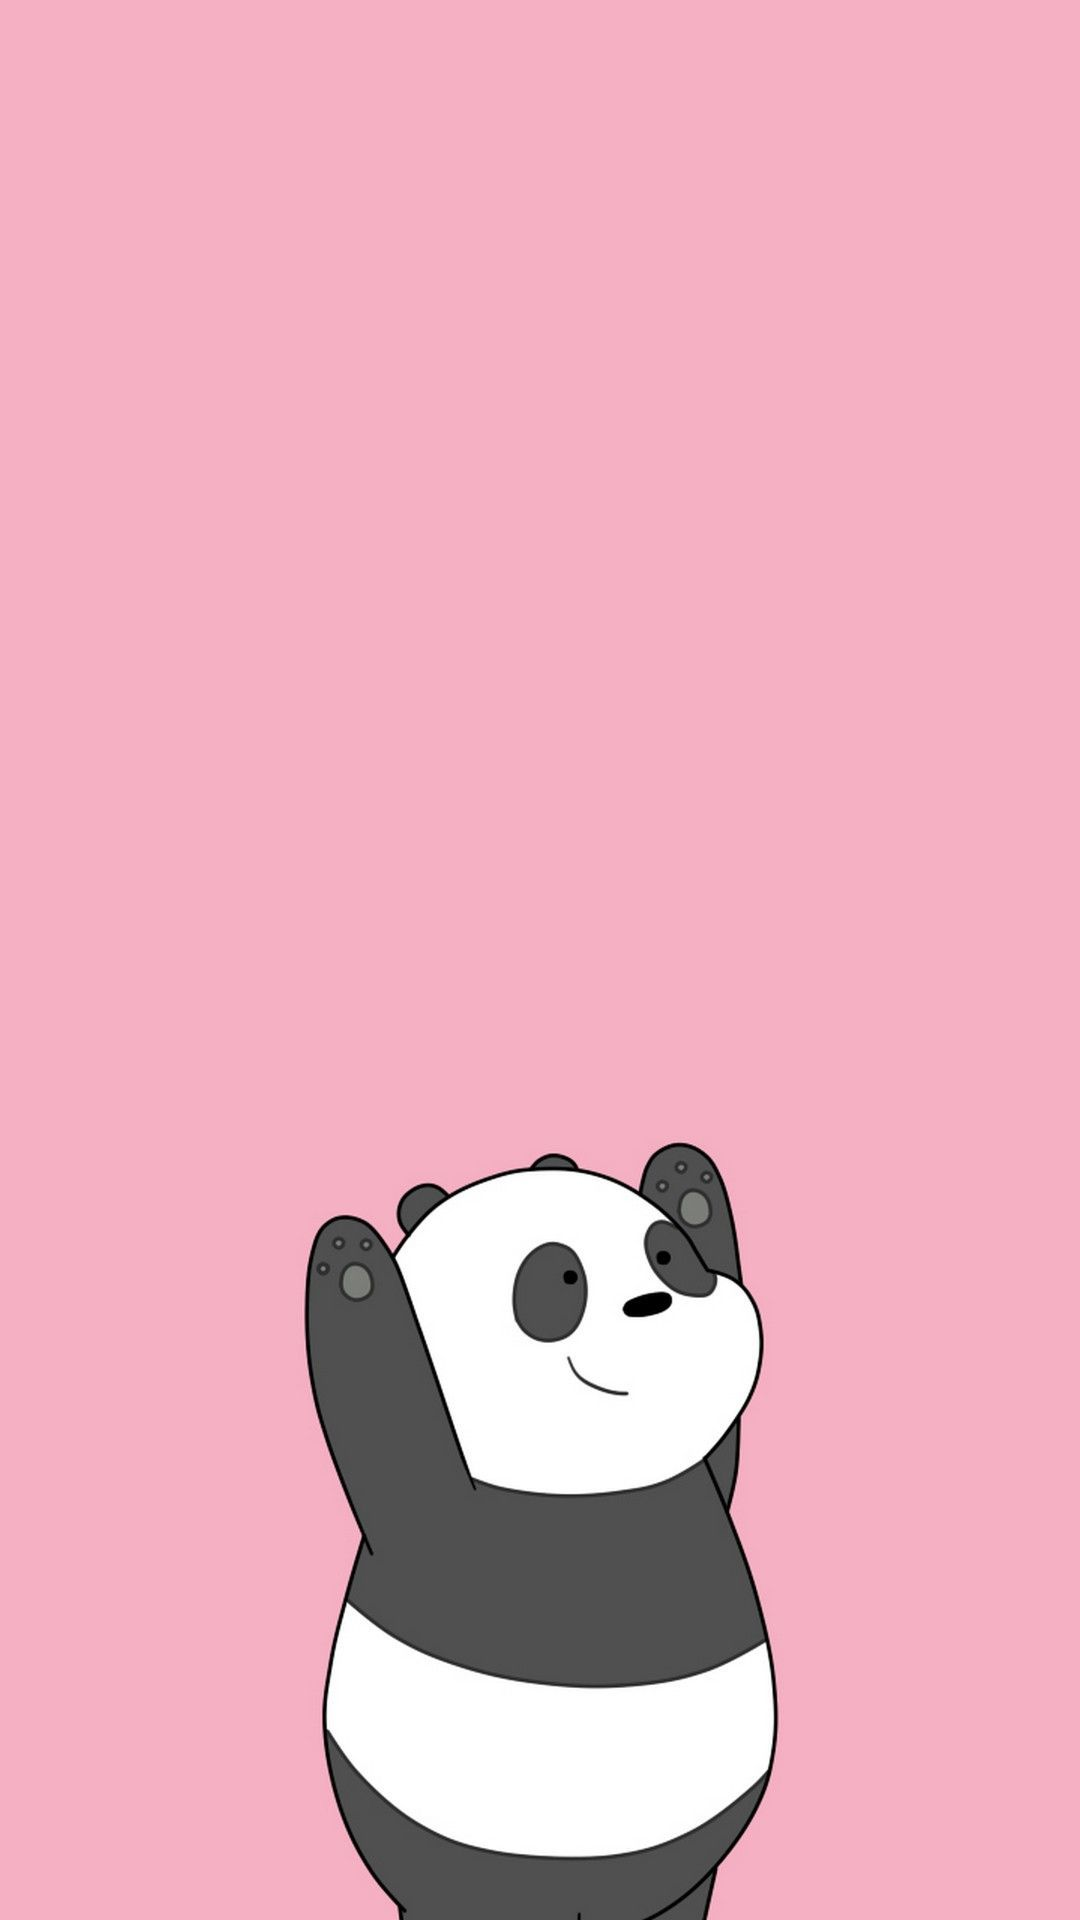 Cute Anime Panda Wallpapers On Wallpaperdog